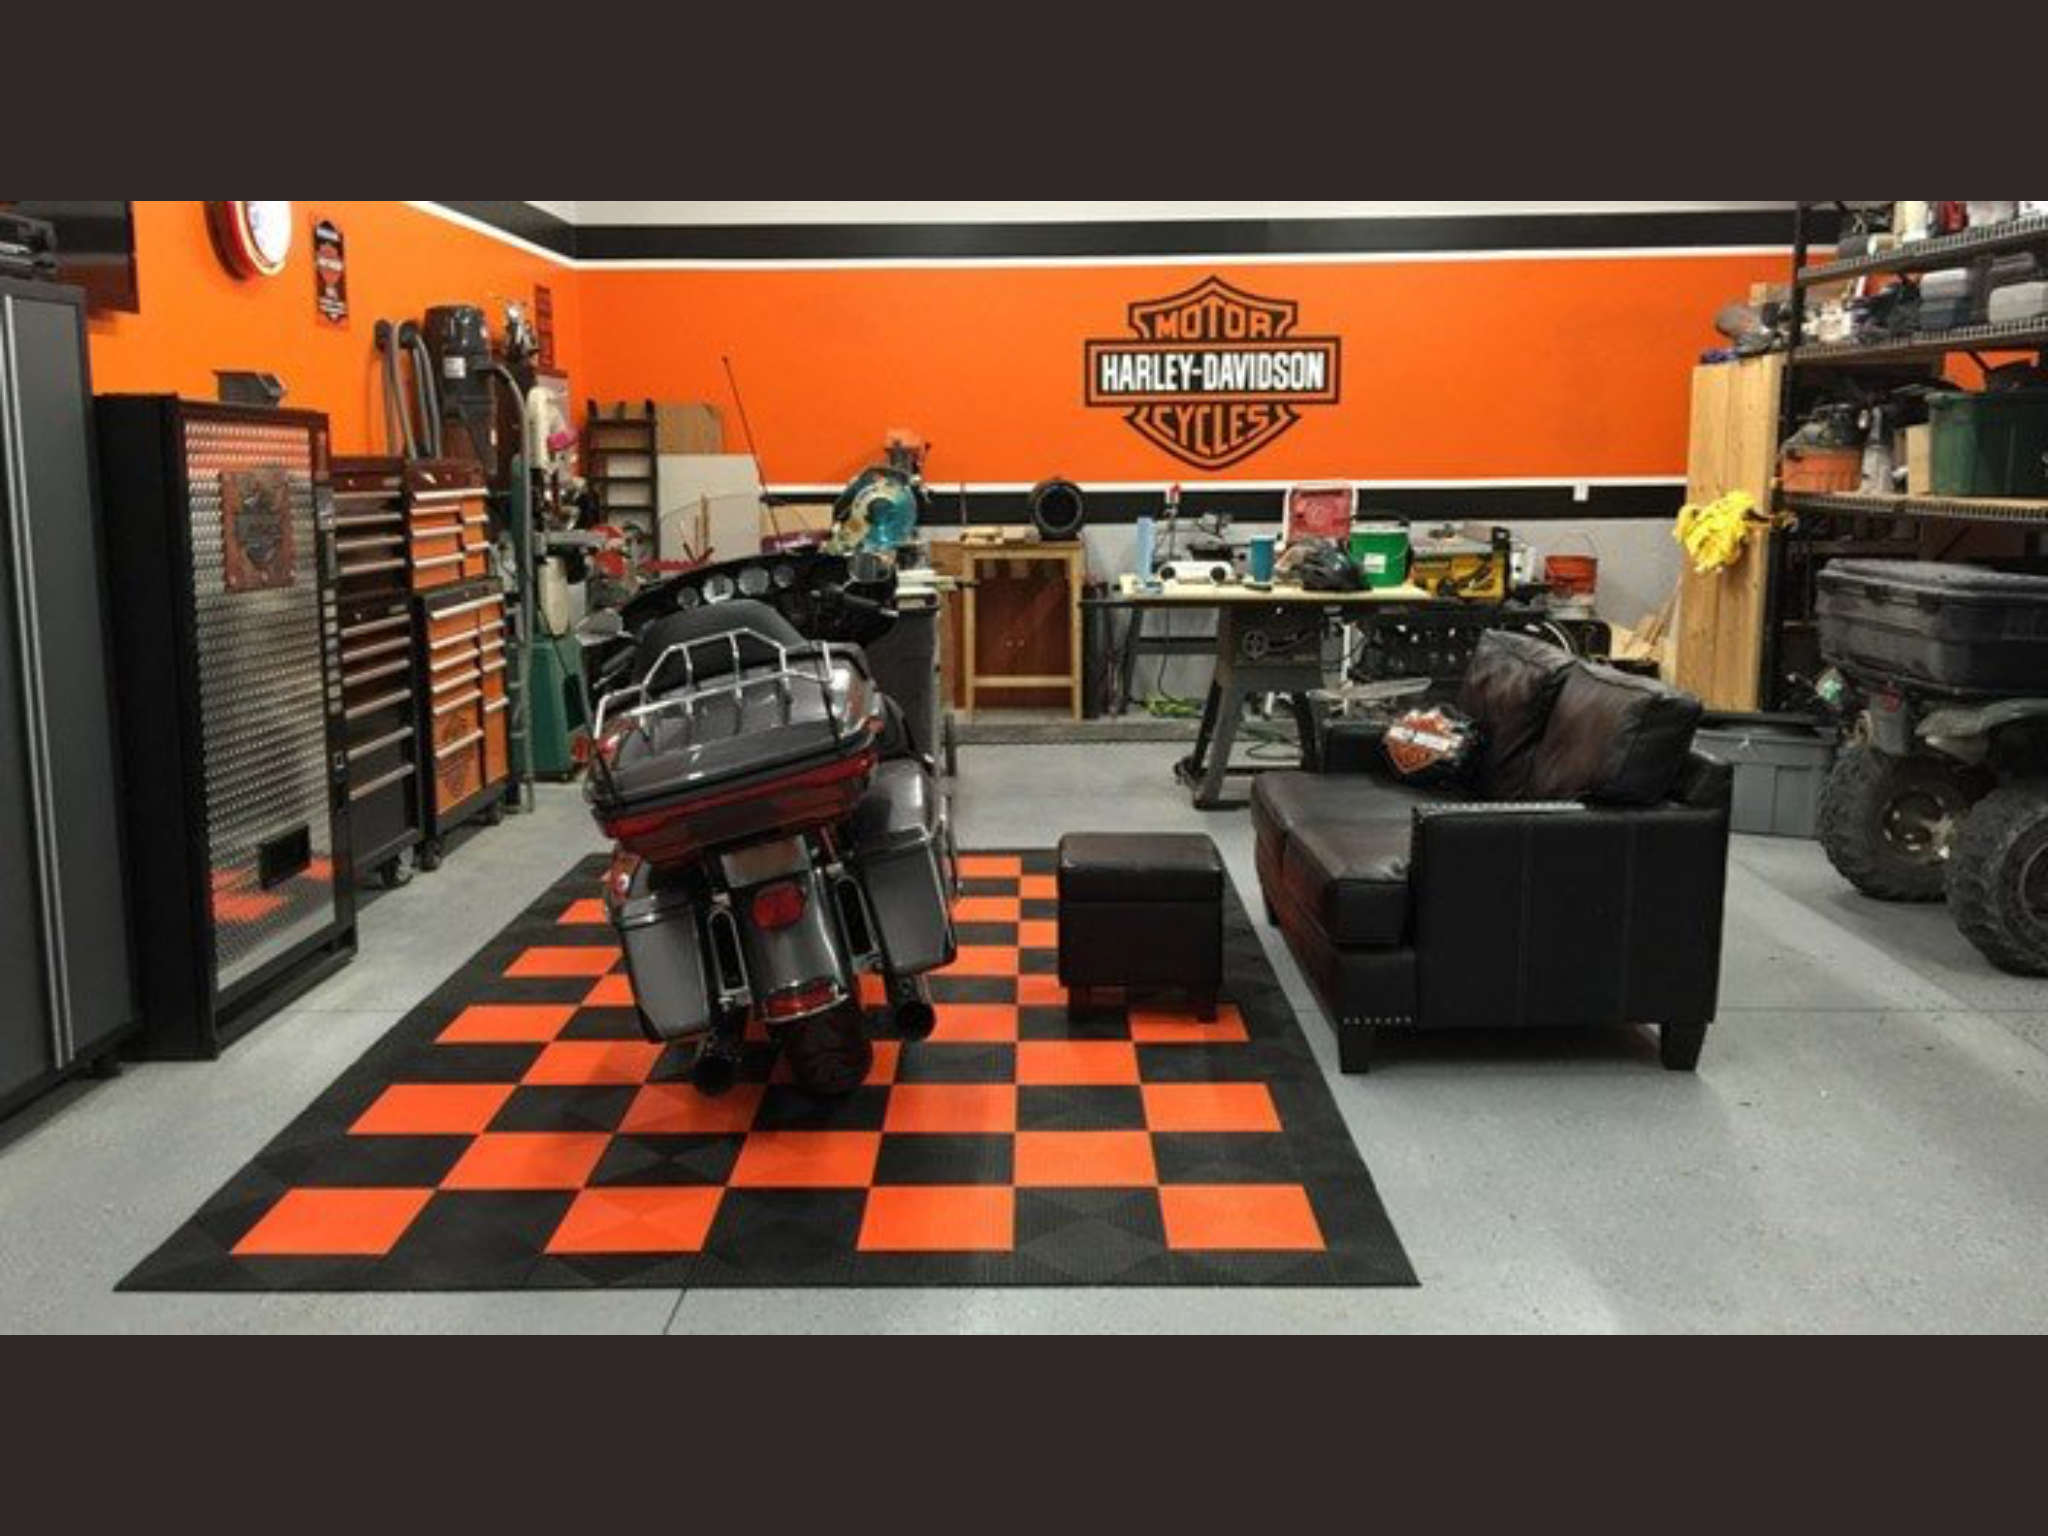 Pin By Roger Womelsdorf On Harley Garage Paint Ideas In 2019 Man Garage Garage Paint Garage Design